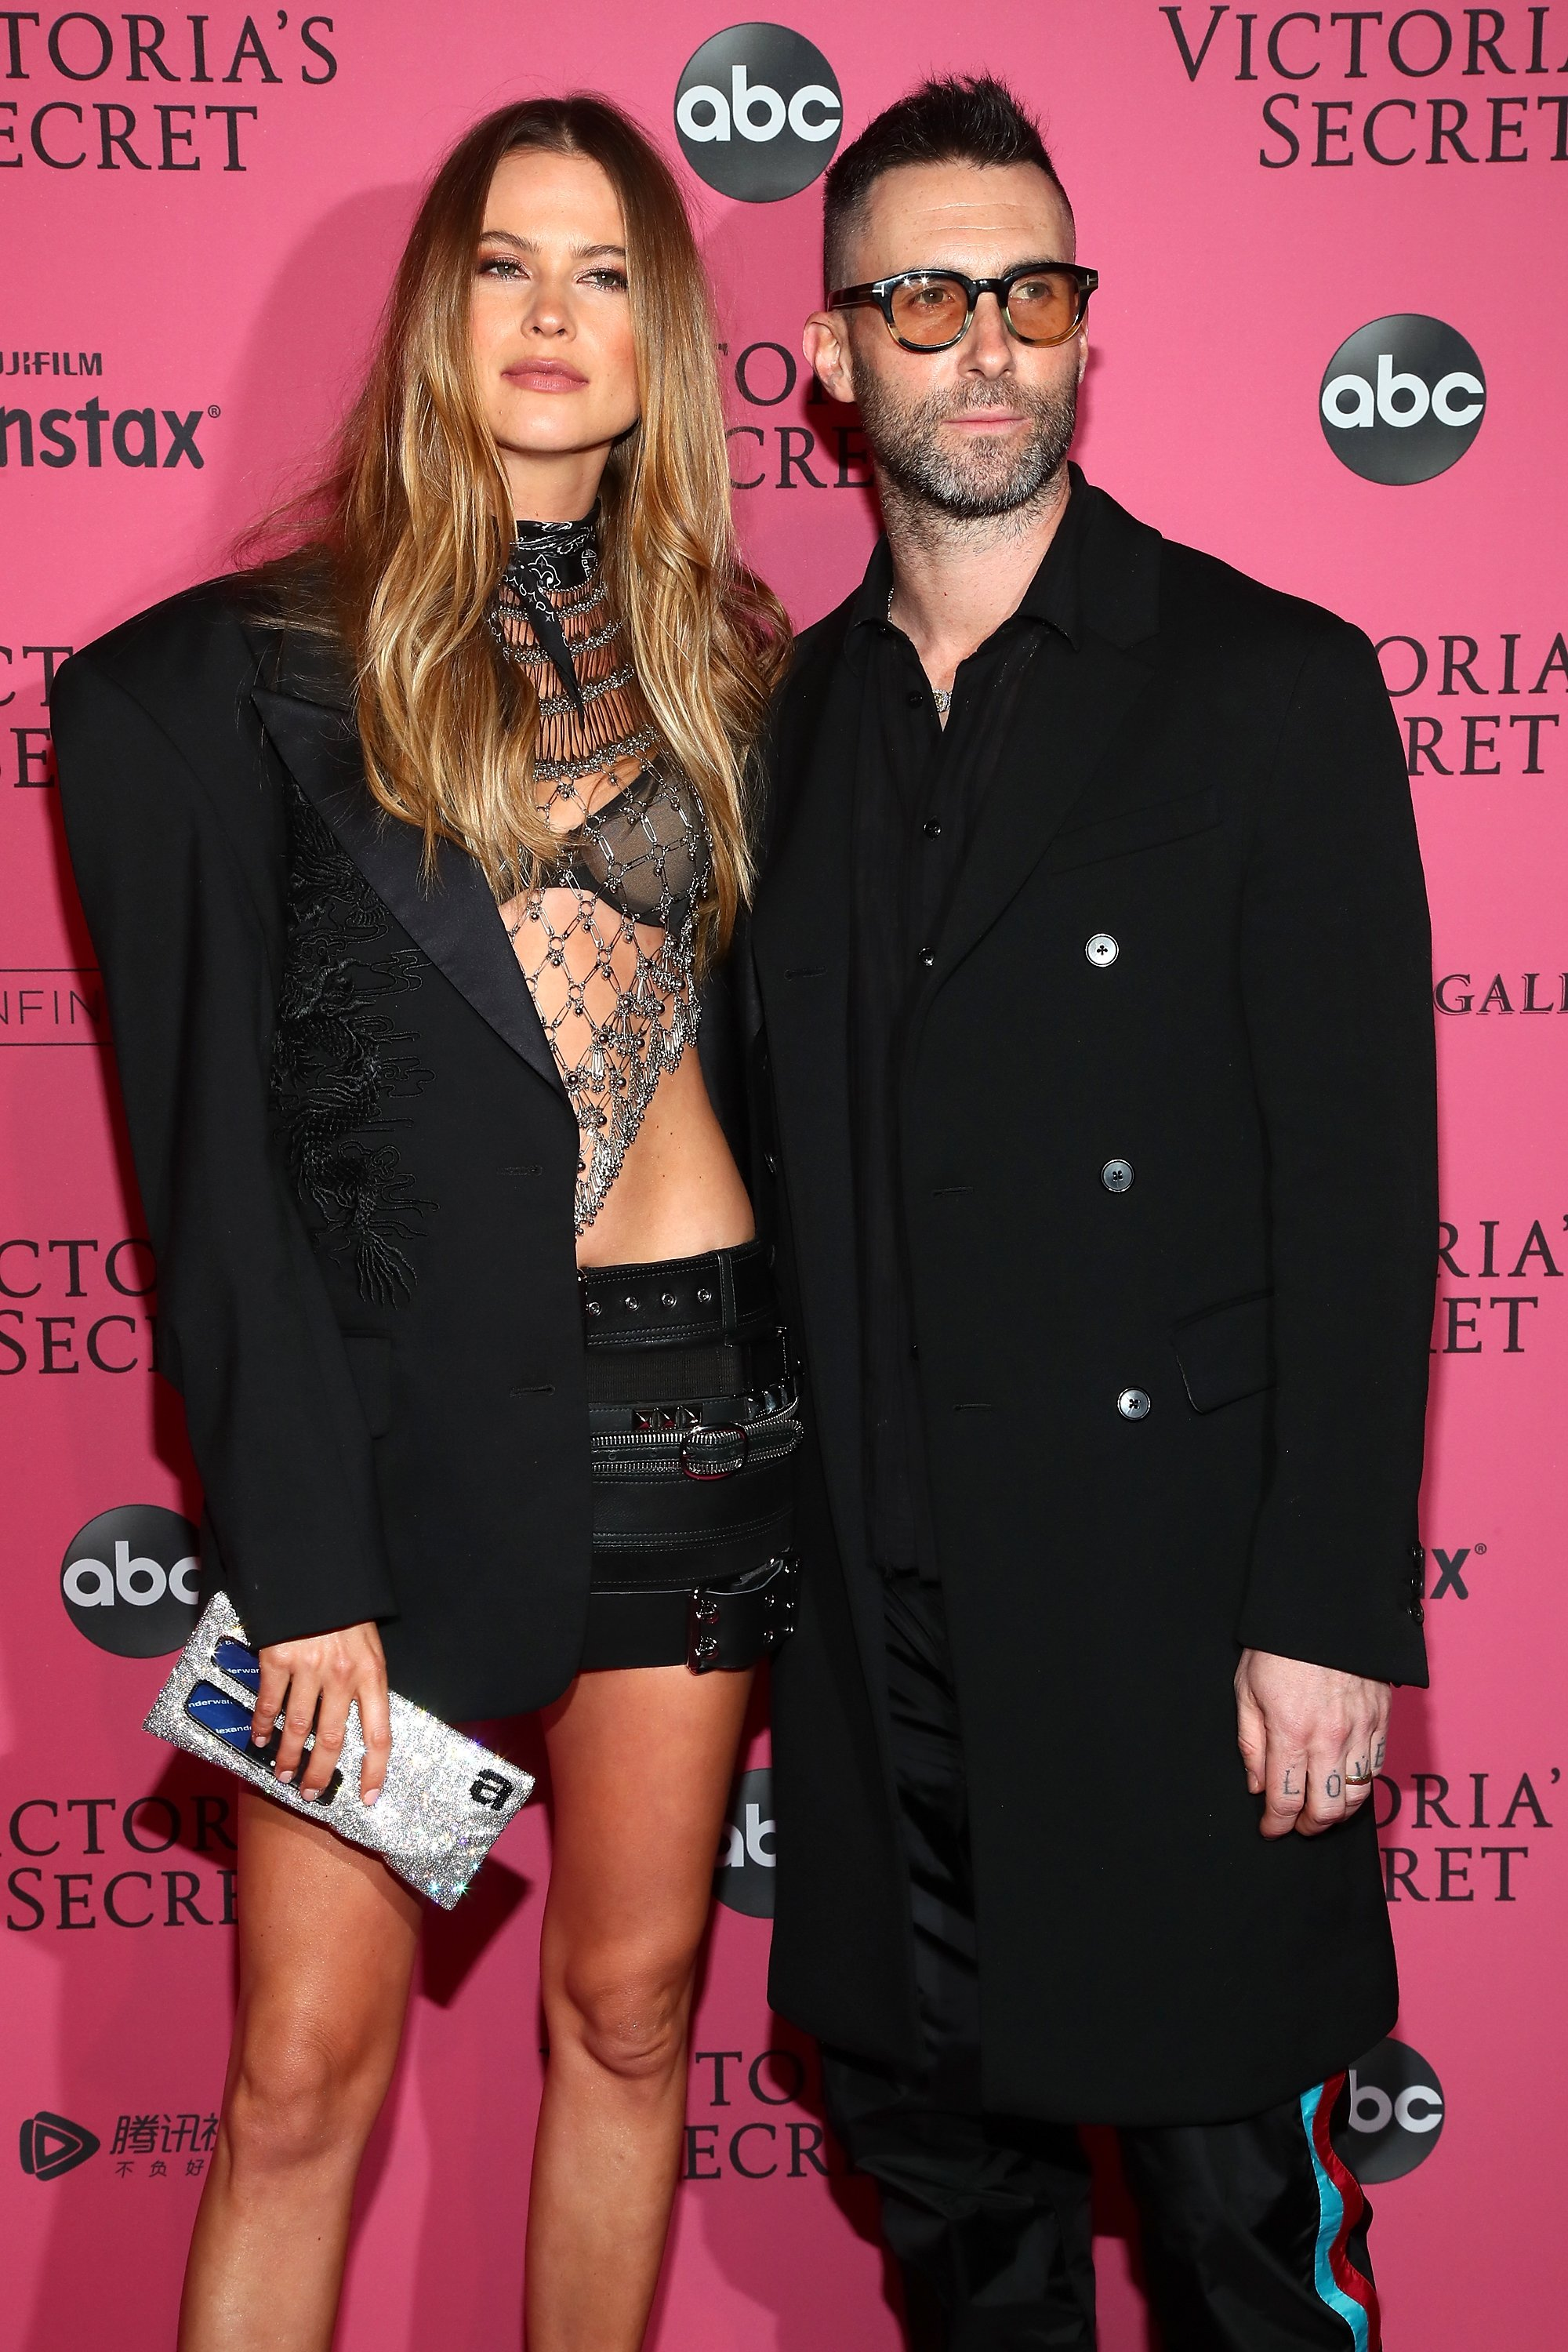 Behati Prinsloo and Adam Levine at the Victoria's Secret Fashion Show After Party on November 8, 2018 in New York City | Photo: Getty Images